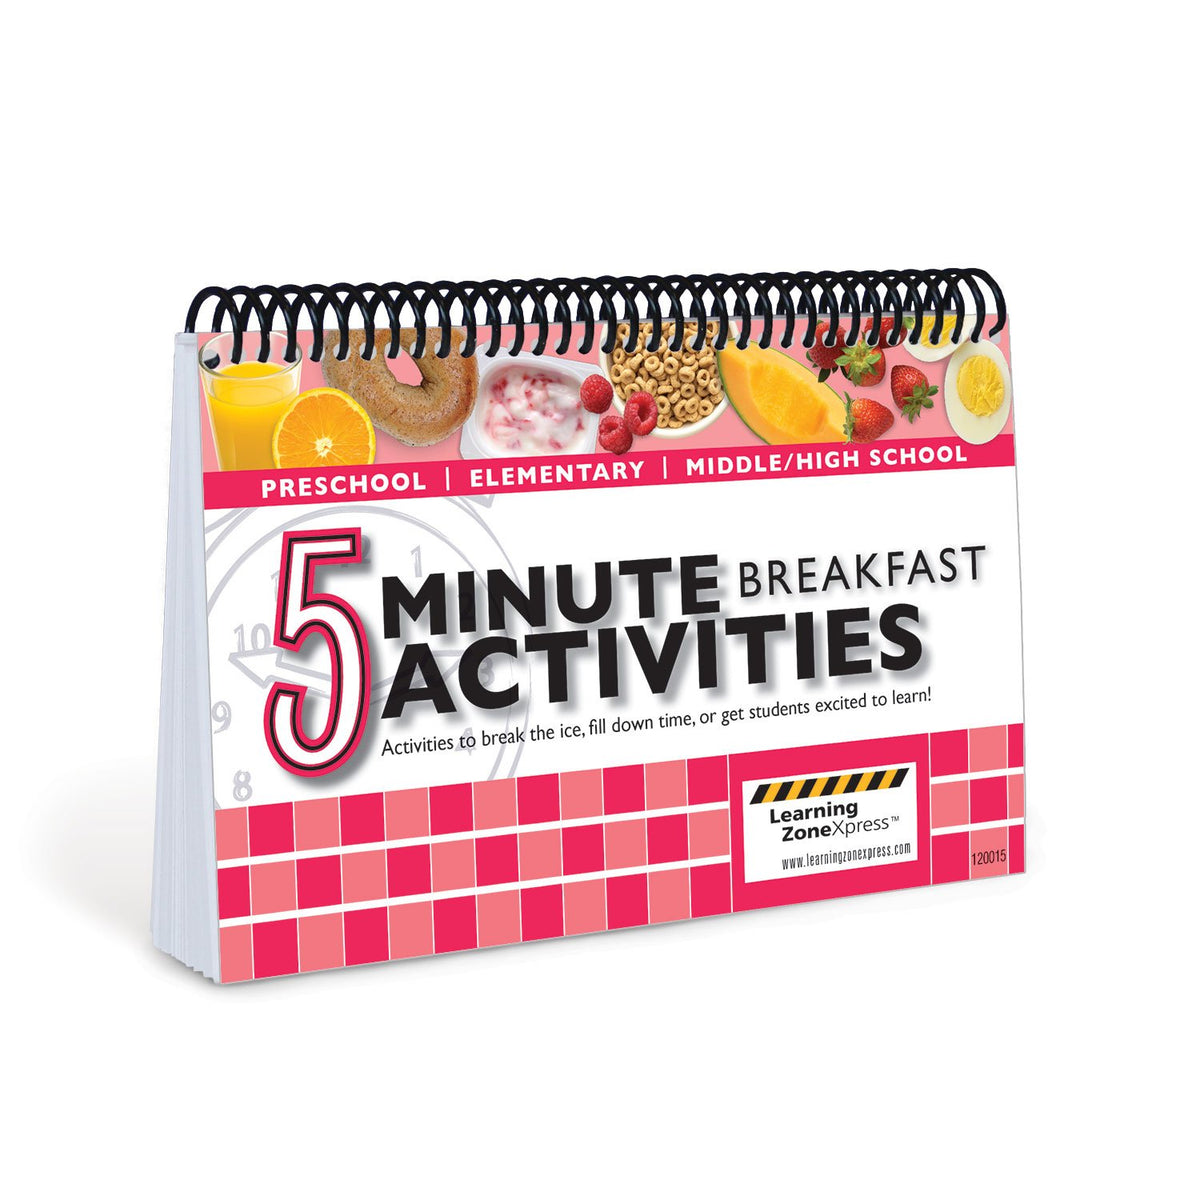 5 Minute Breakfast Activities